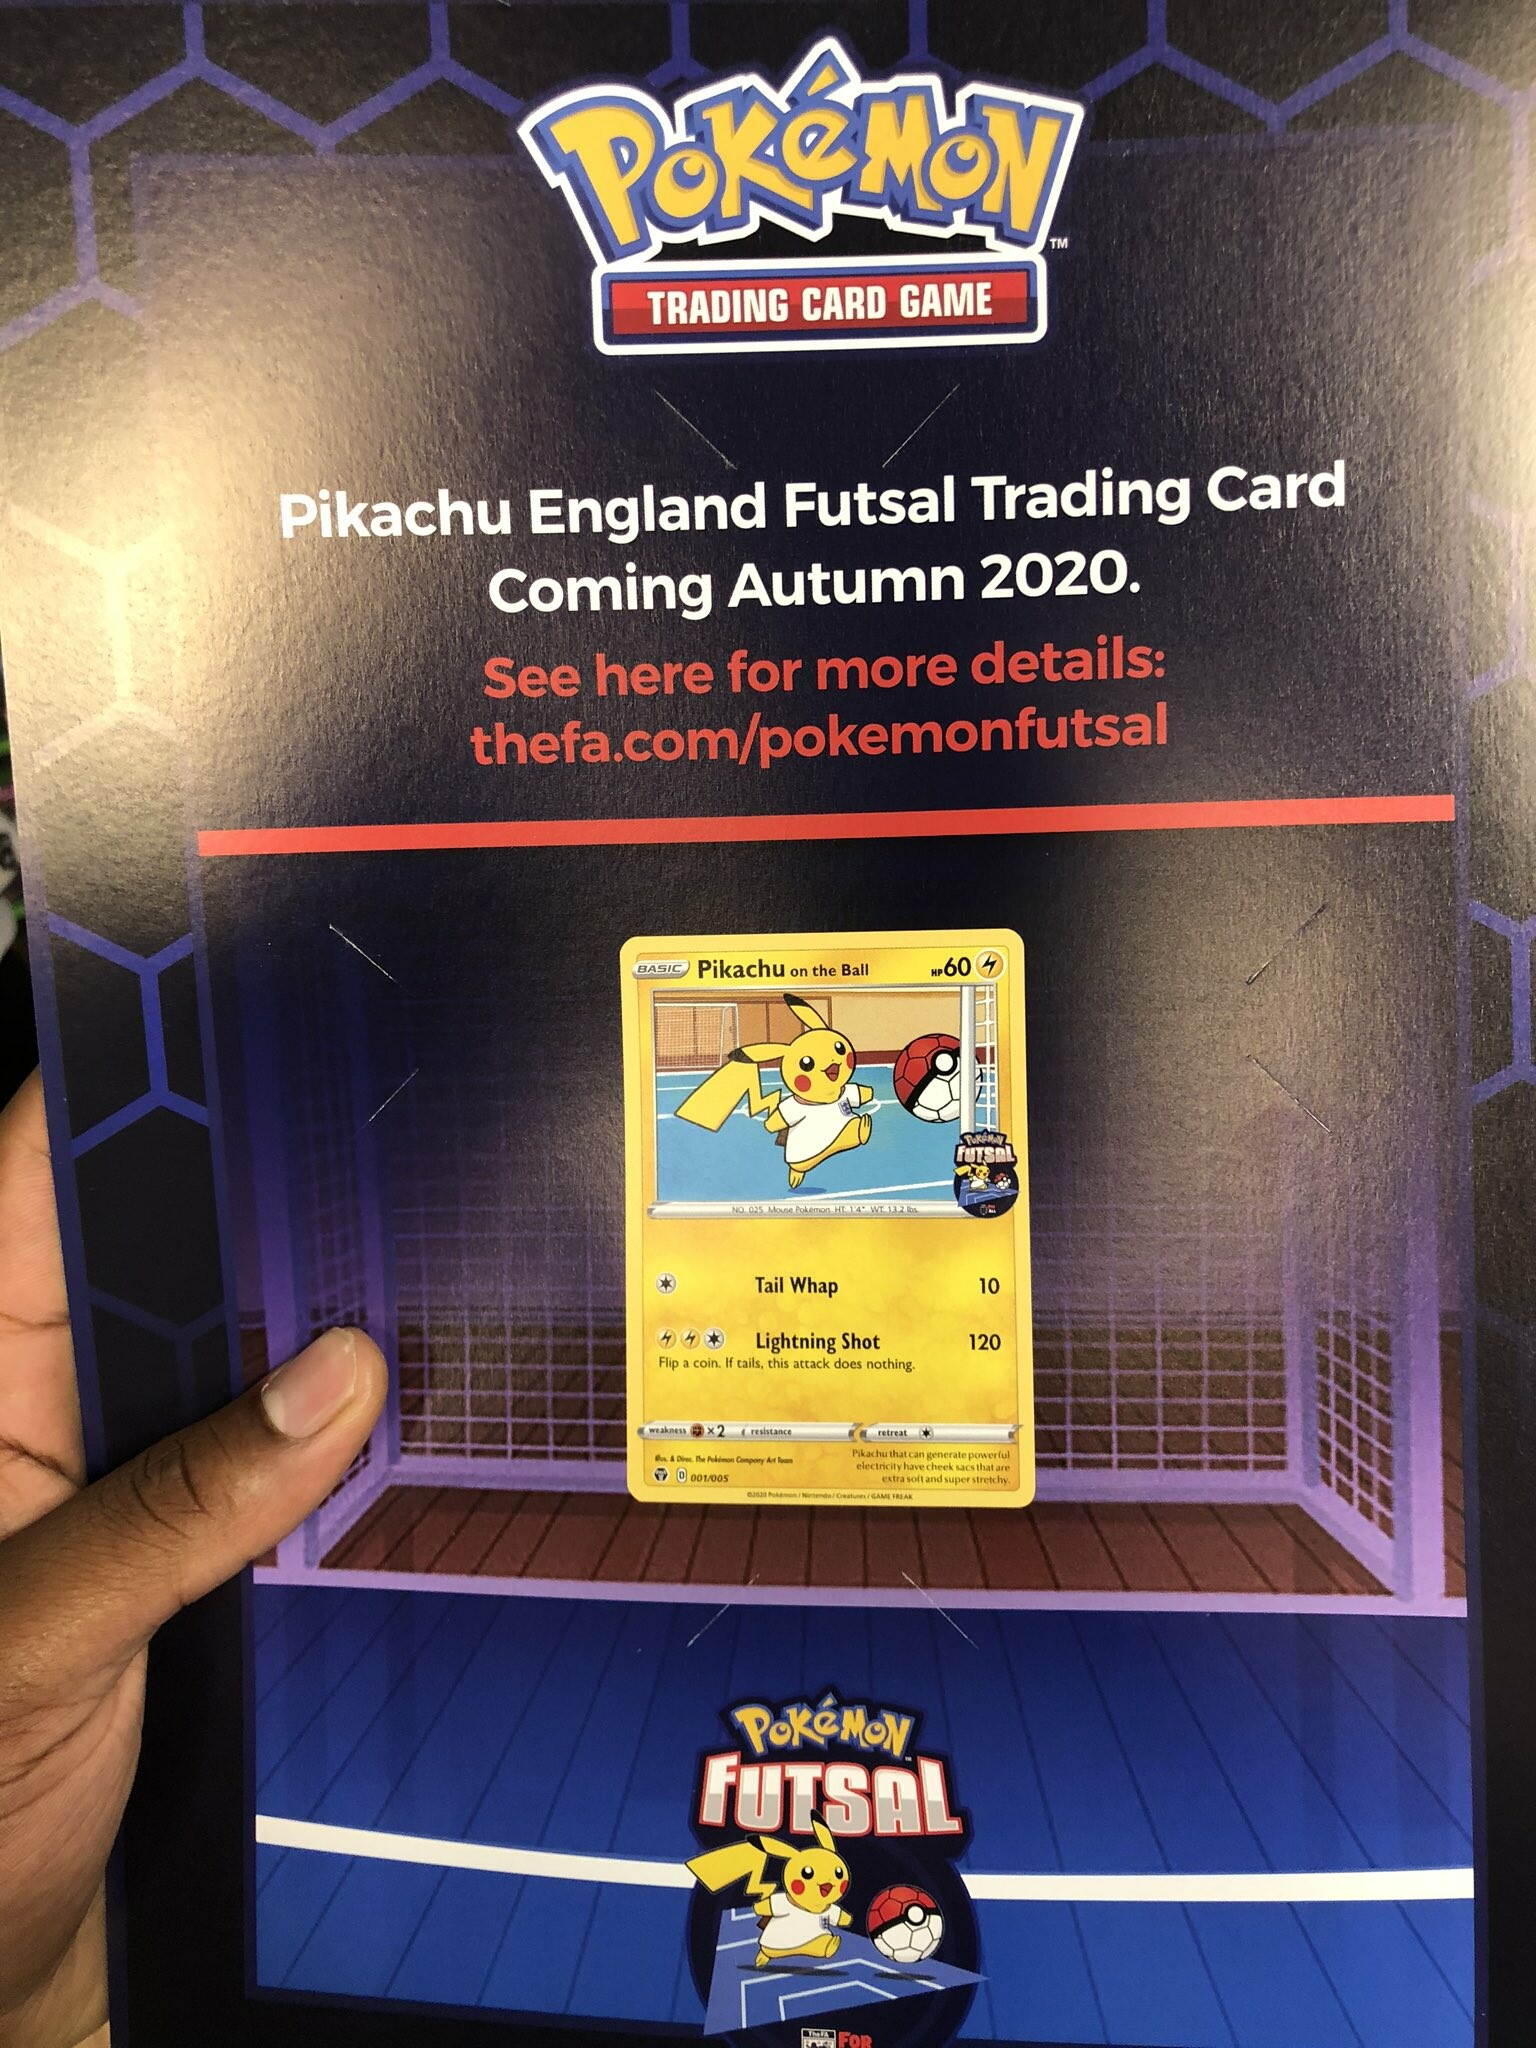 Grookey On The Ball Game Uk Exclusive Store Pokemon Futsal Promo Revealed Pokeguardian We Bring You The Latest Pokemon Tcg News Every Day Specifically the leg on the left being crazy skinny in the thigh region! grookey on the ball game uk exclusive